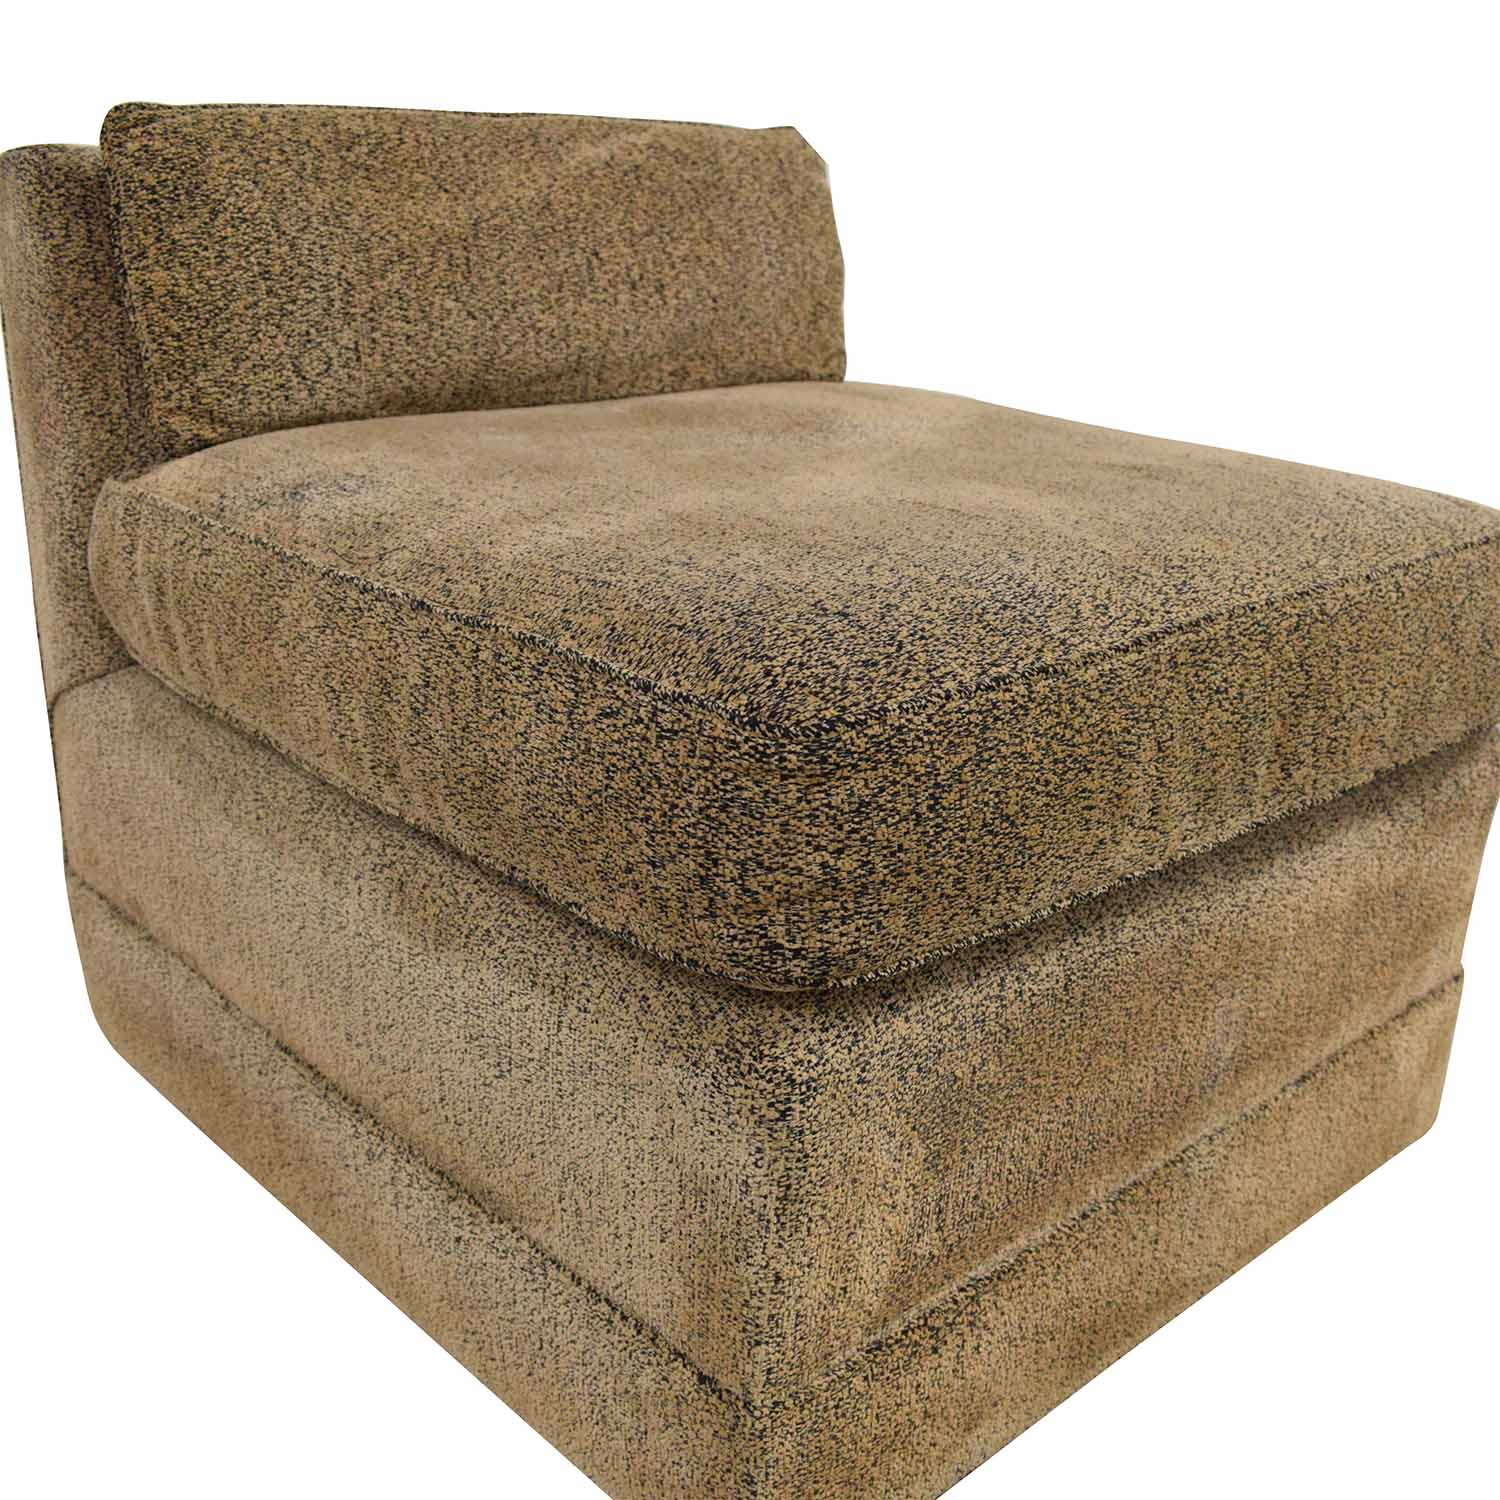 buy  Custom Ottoman with Low Back online